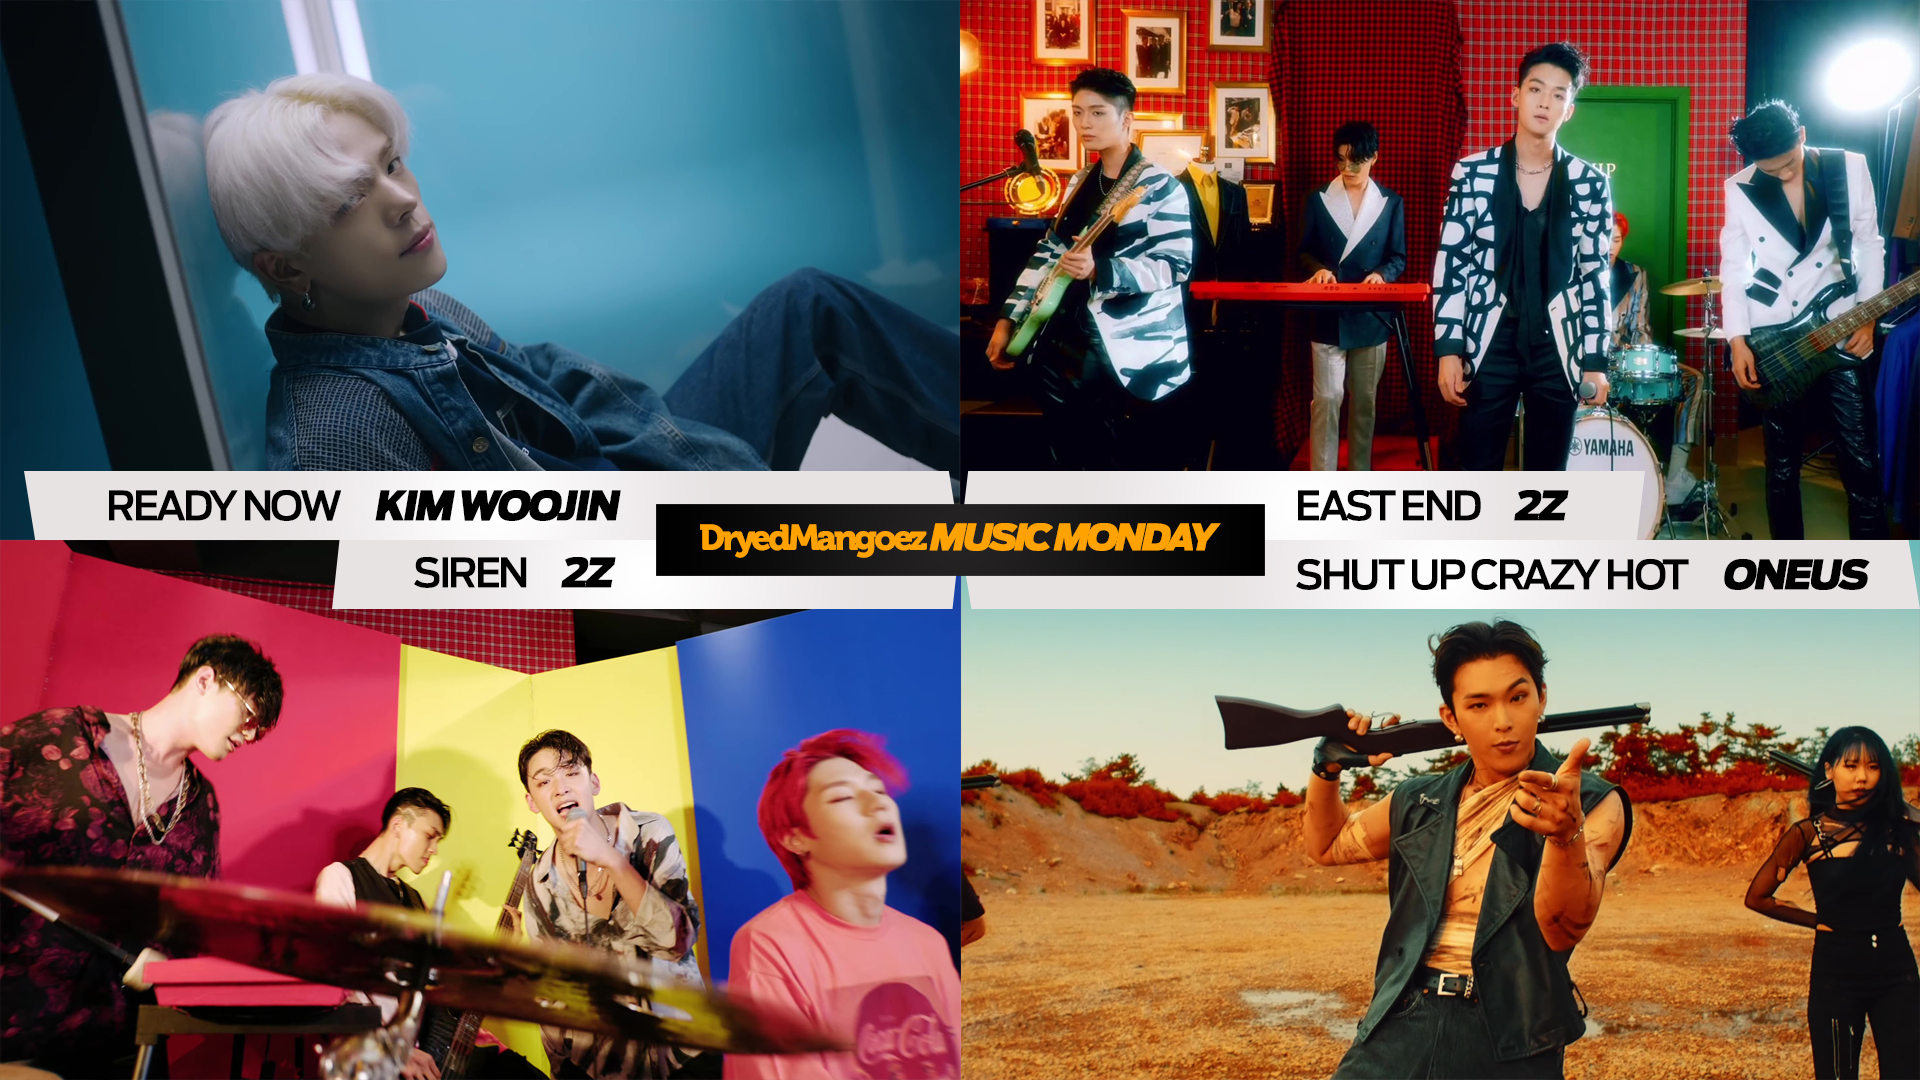 Music Monday, August 9, 2021 – Excellent Tracks from Excellent Artists: Kim Woojin, 2Z, ONEUS